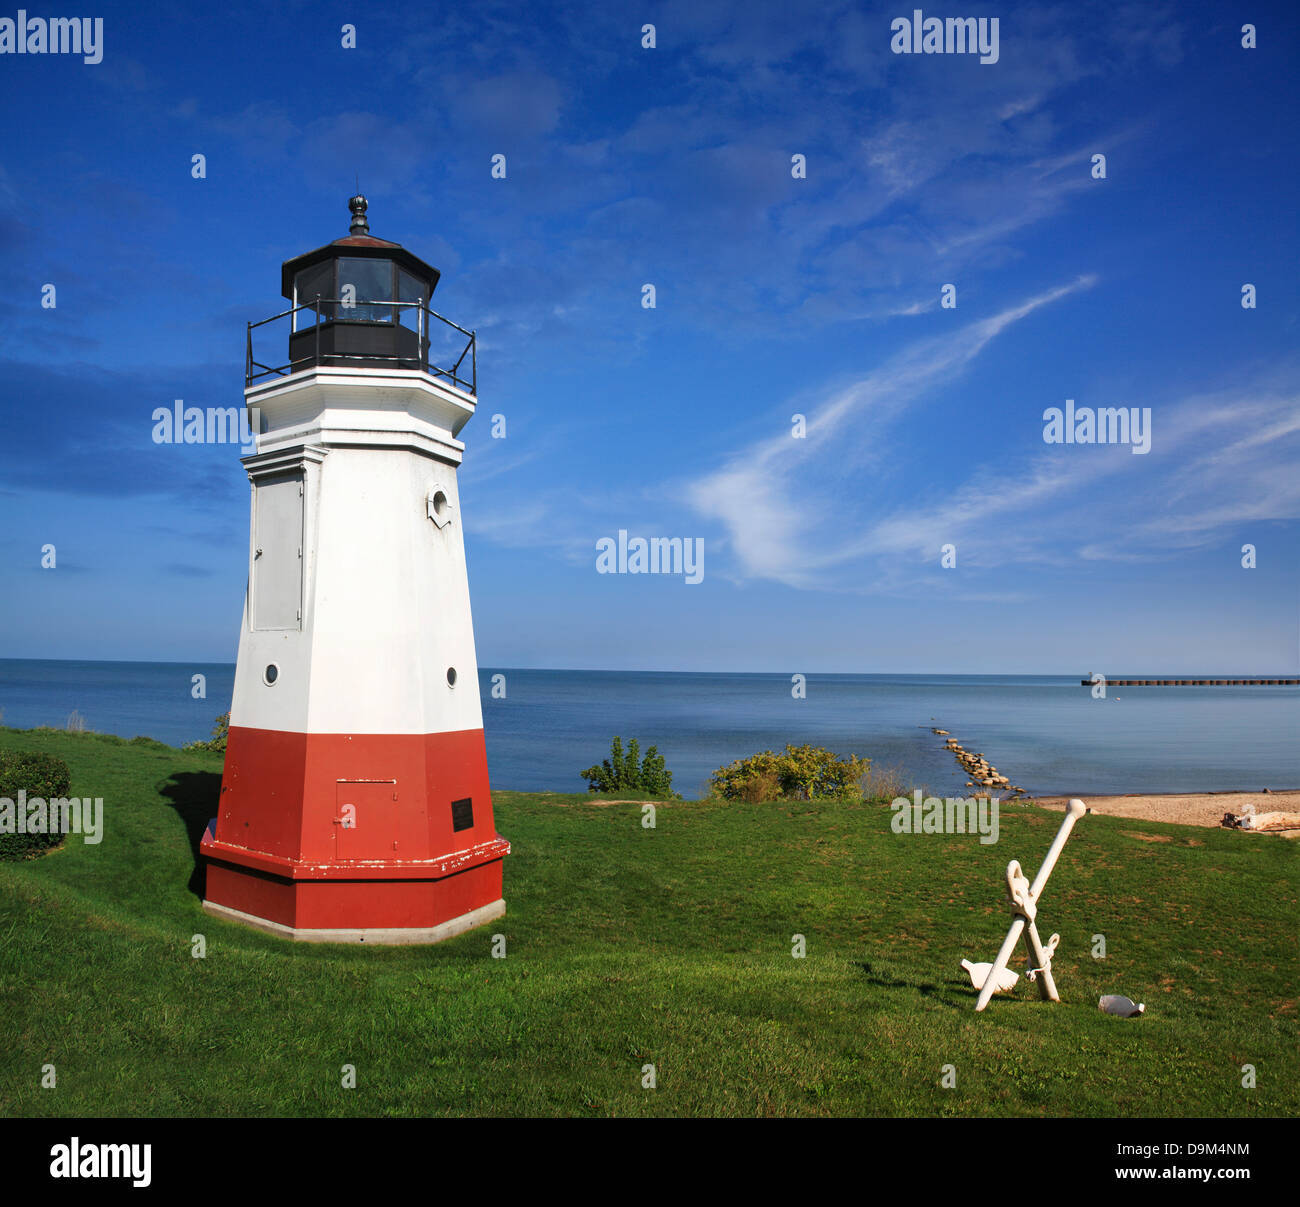 A Very Cute And Very Small Lighthouse, The Vermilion Light On A Gorgeous Day At Vermilion Ohio On Lake Erie, USA - Stock Image